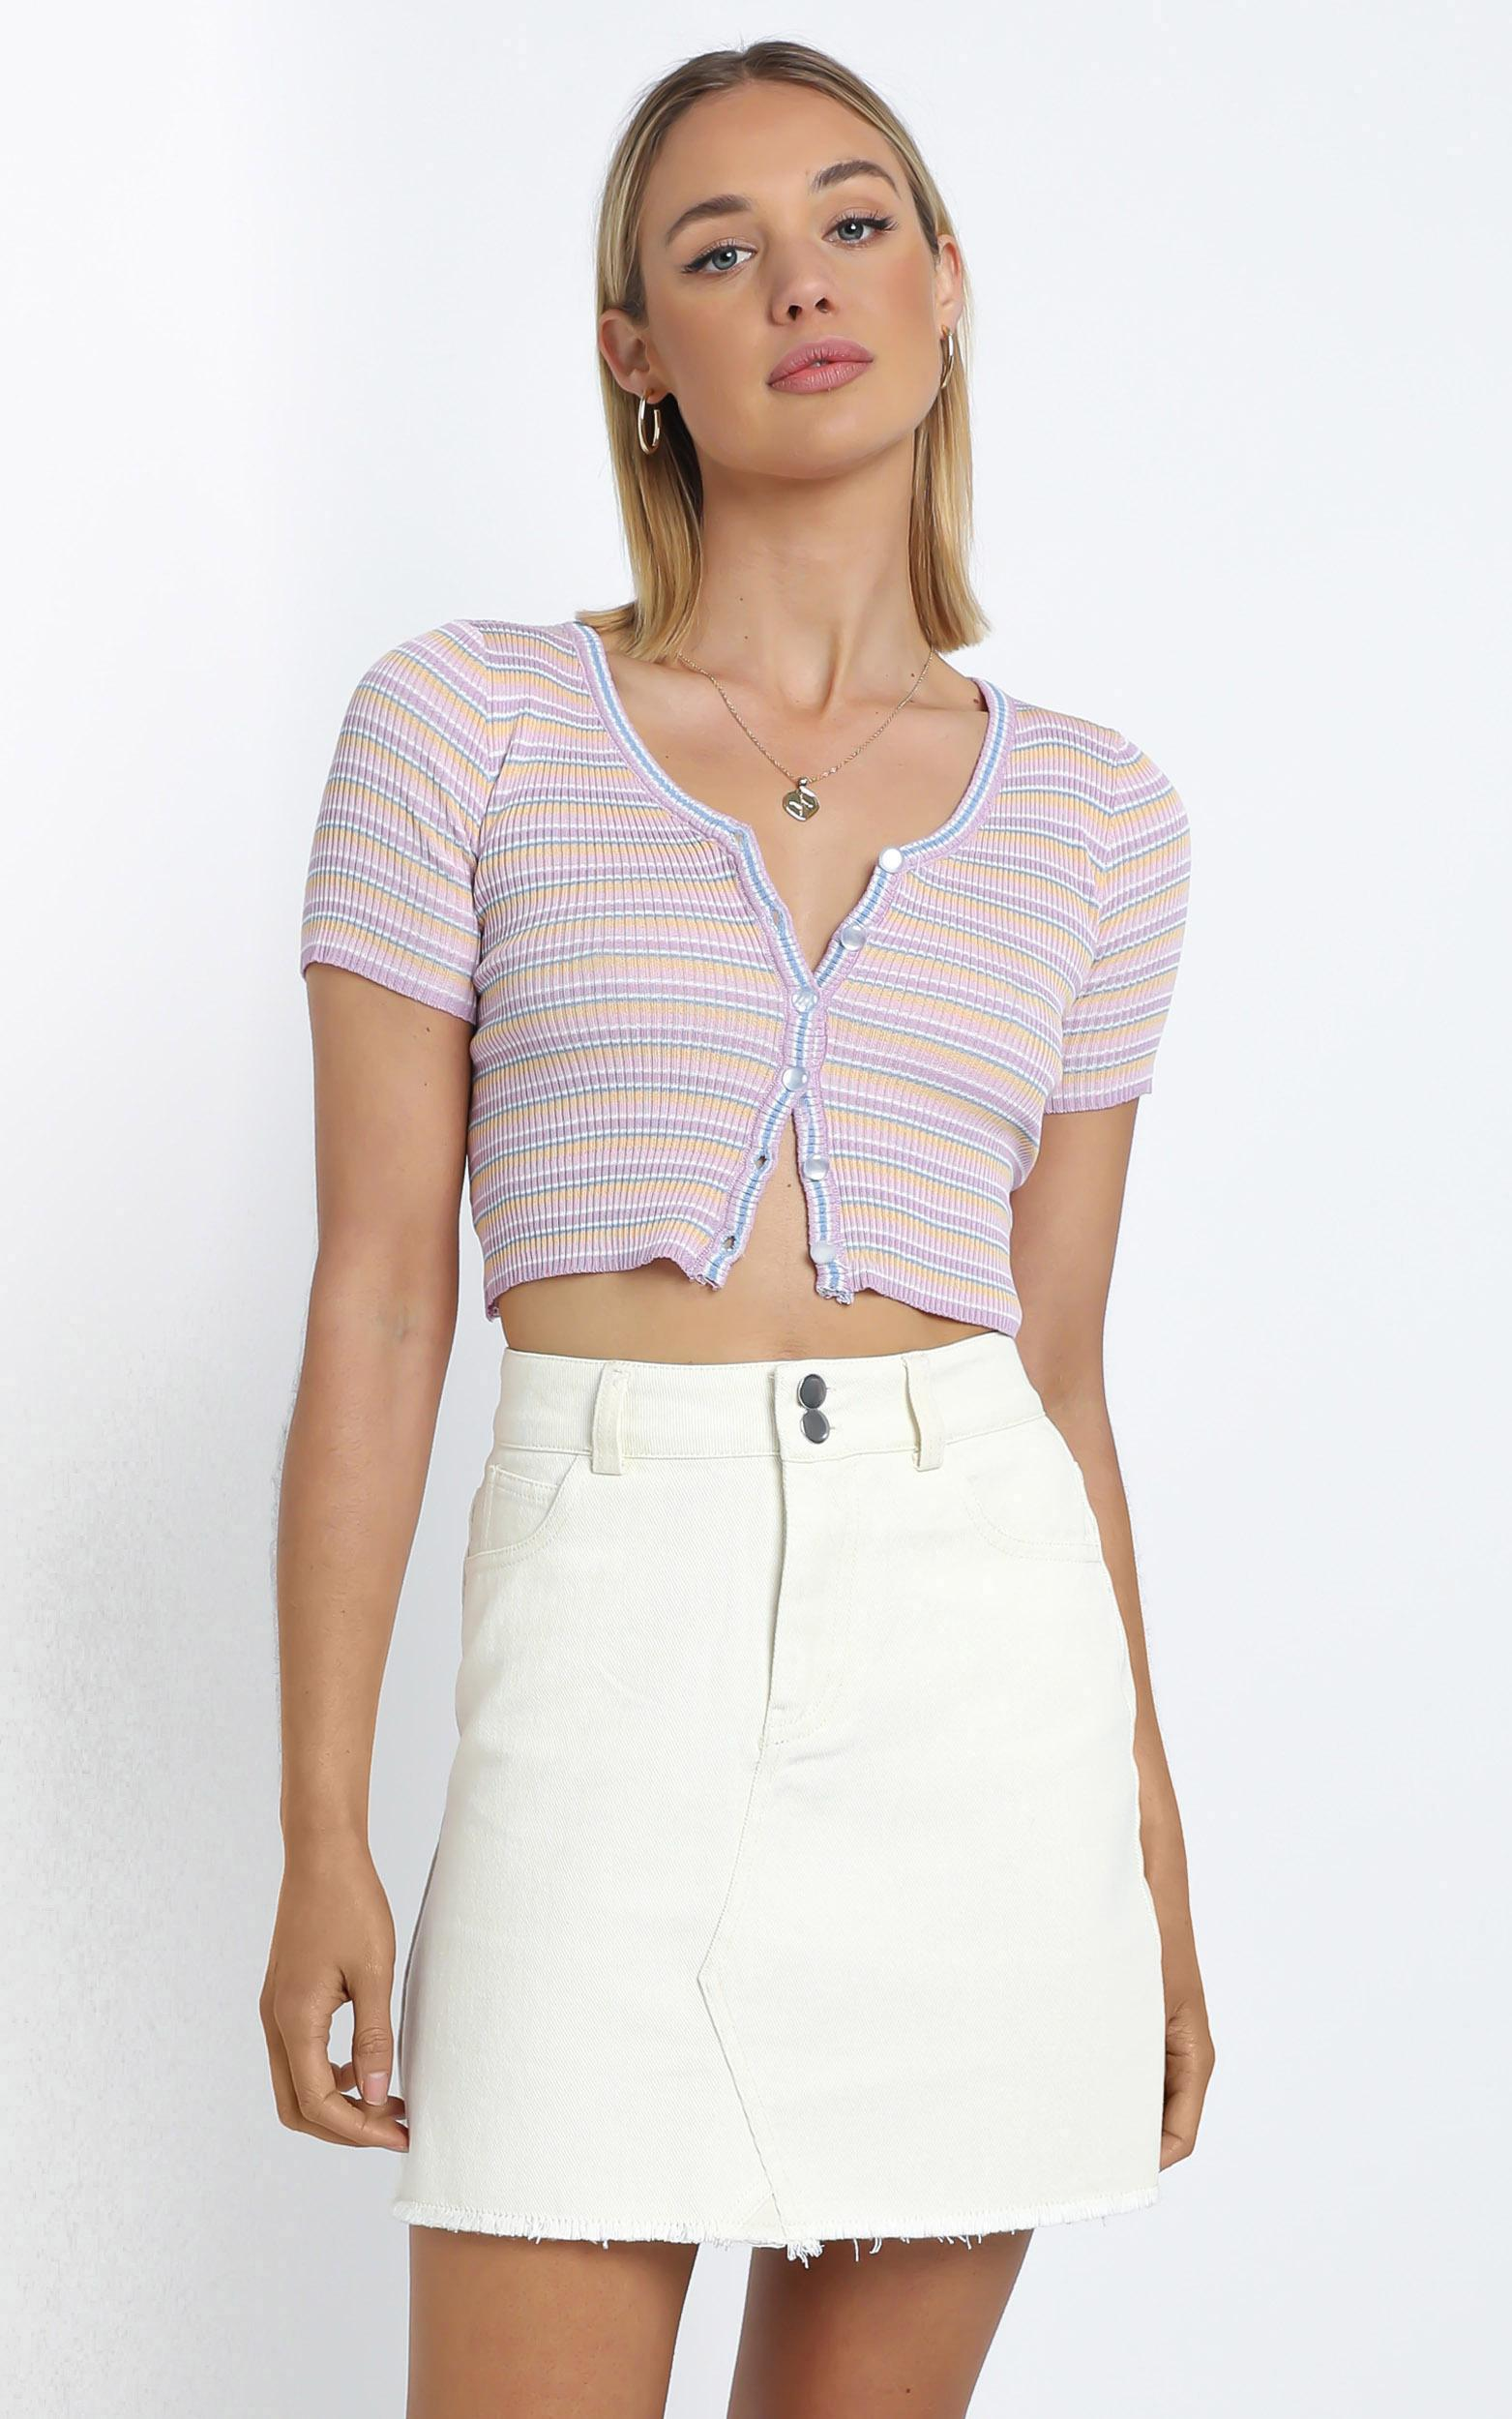 Morris Top in Pink Stripe - M/L, Pink, hi-res image number null